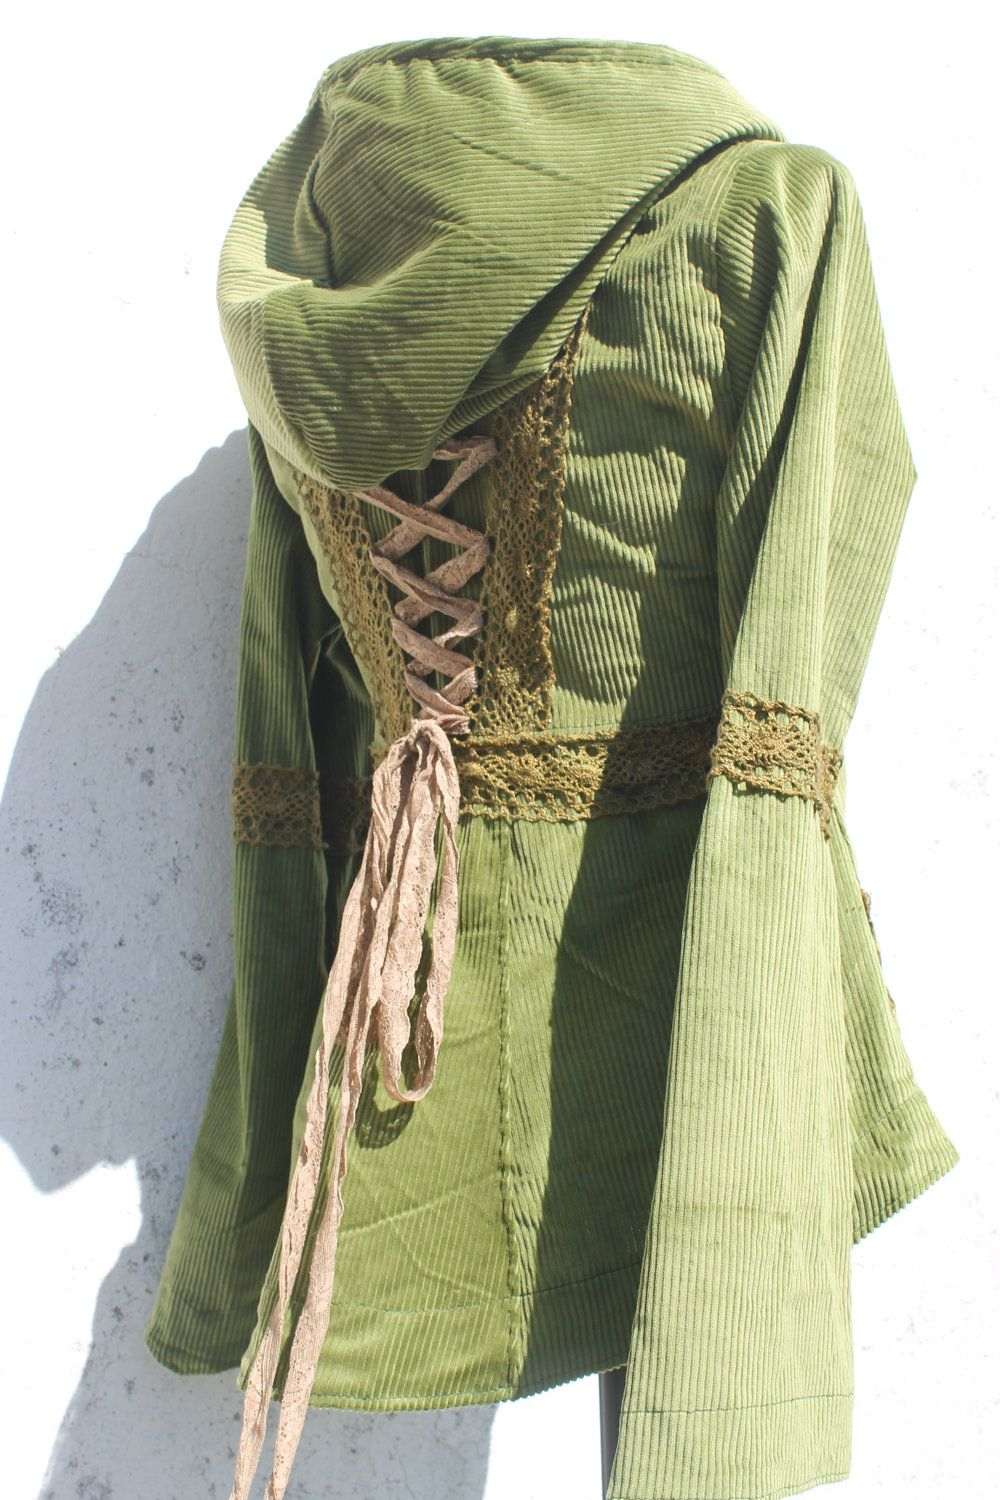 4feed17e31 olive green and brown laceup corset jacket with a big hoodie and lace  details. €155.00